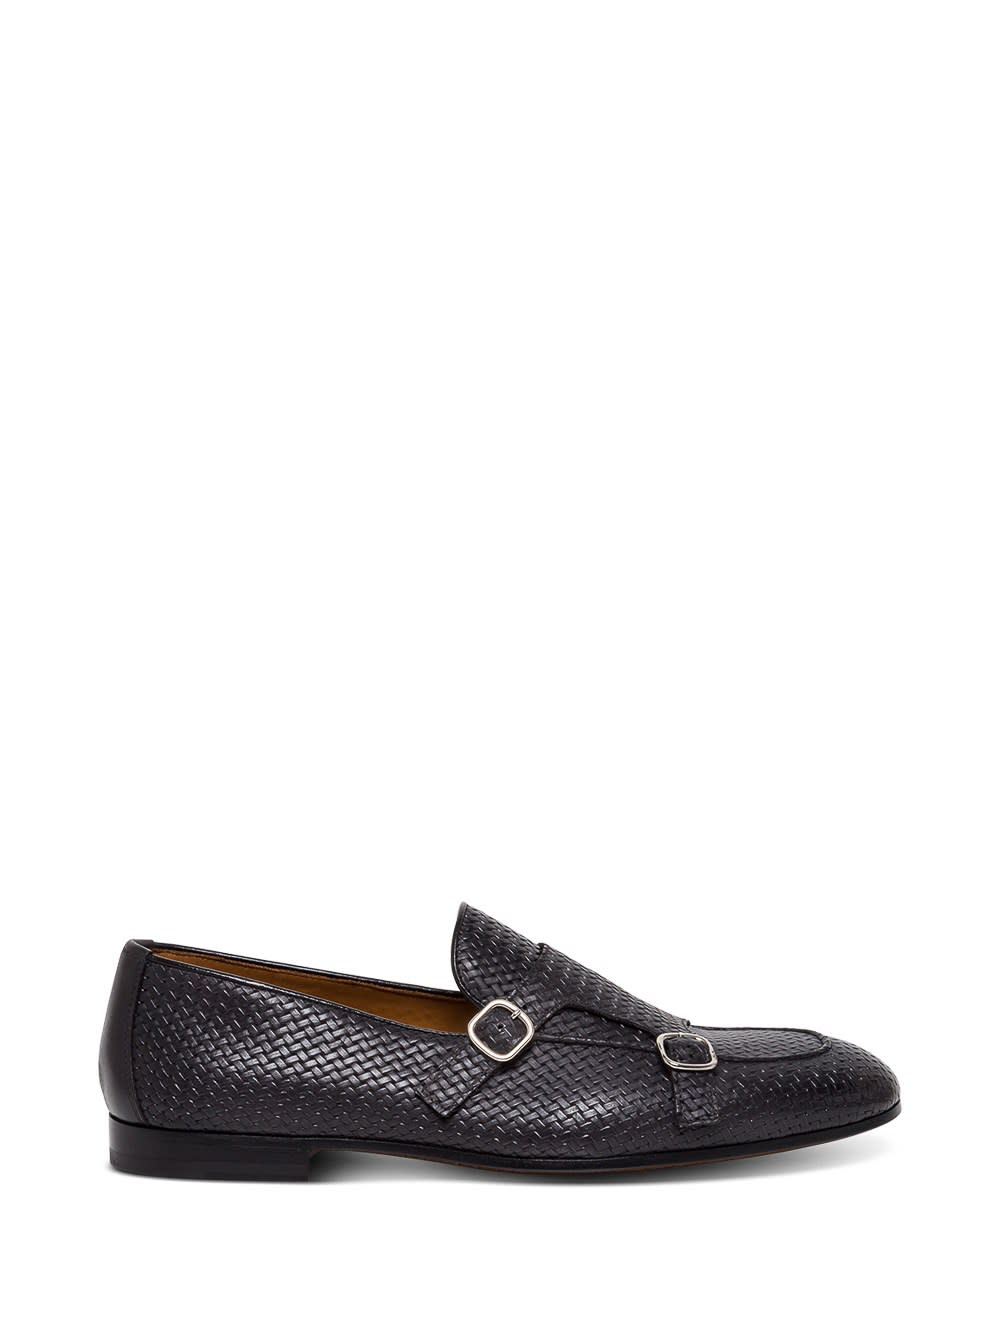 Doucals Braided Leather Loafers With Buckles